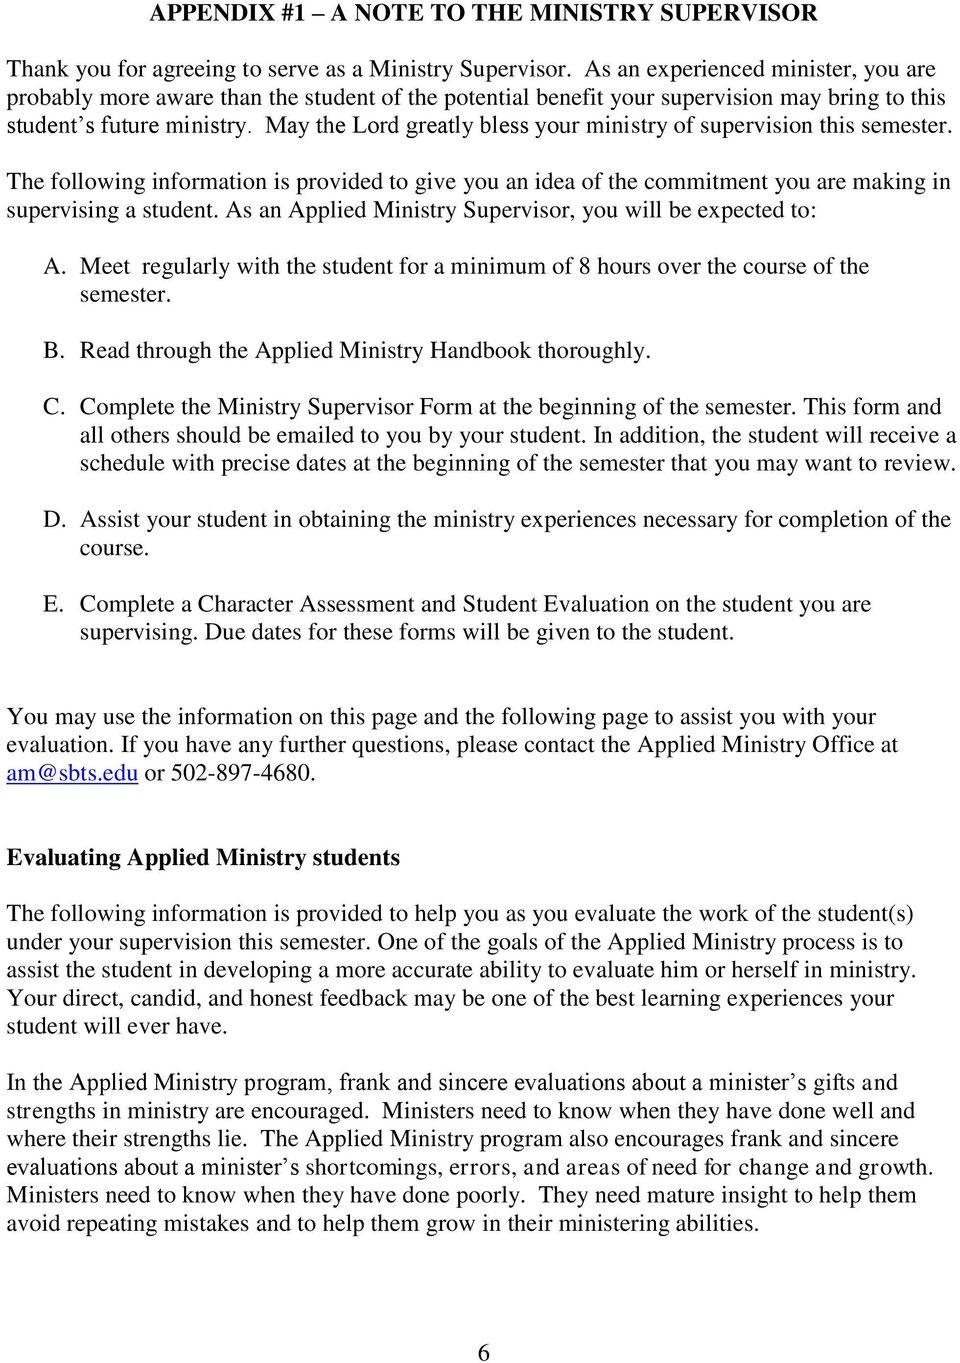 May the Lord greatly bless your ministry of supervision this semester. The following information is provided to give you an idea of the commitment you are making in supervising a student.